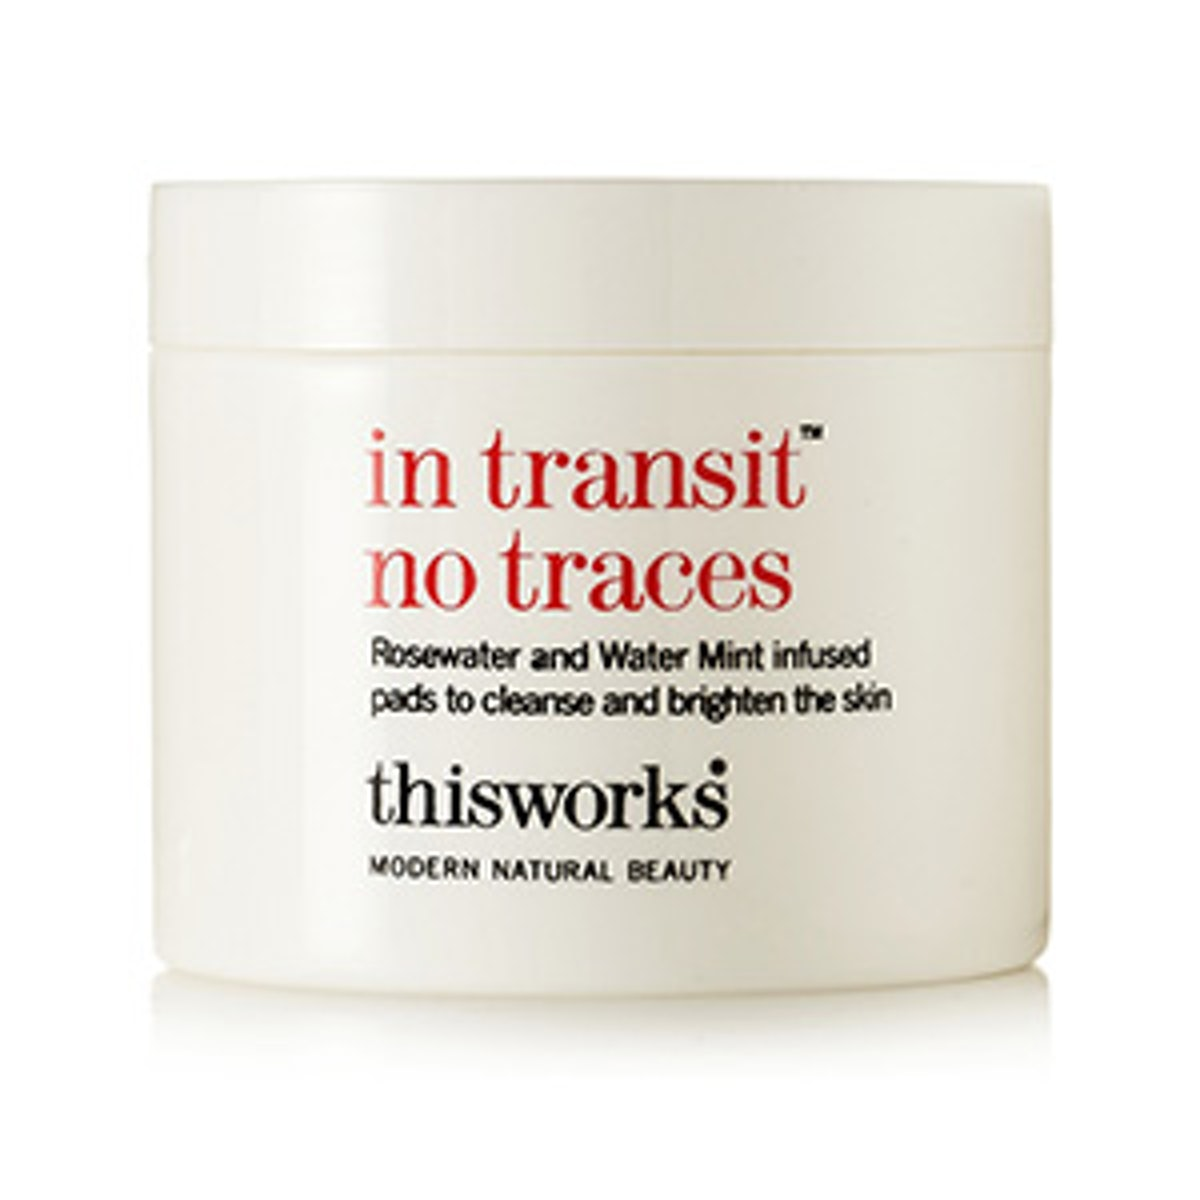 'In Transit No Traces' Rosewater and Mint Pads